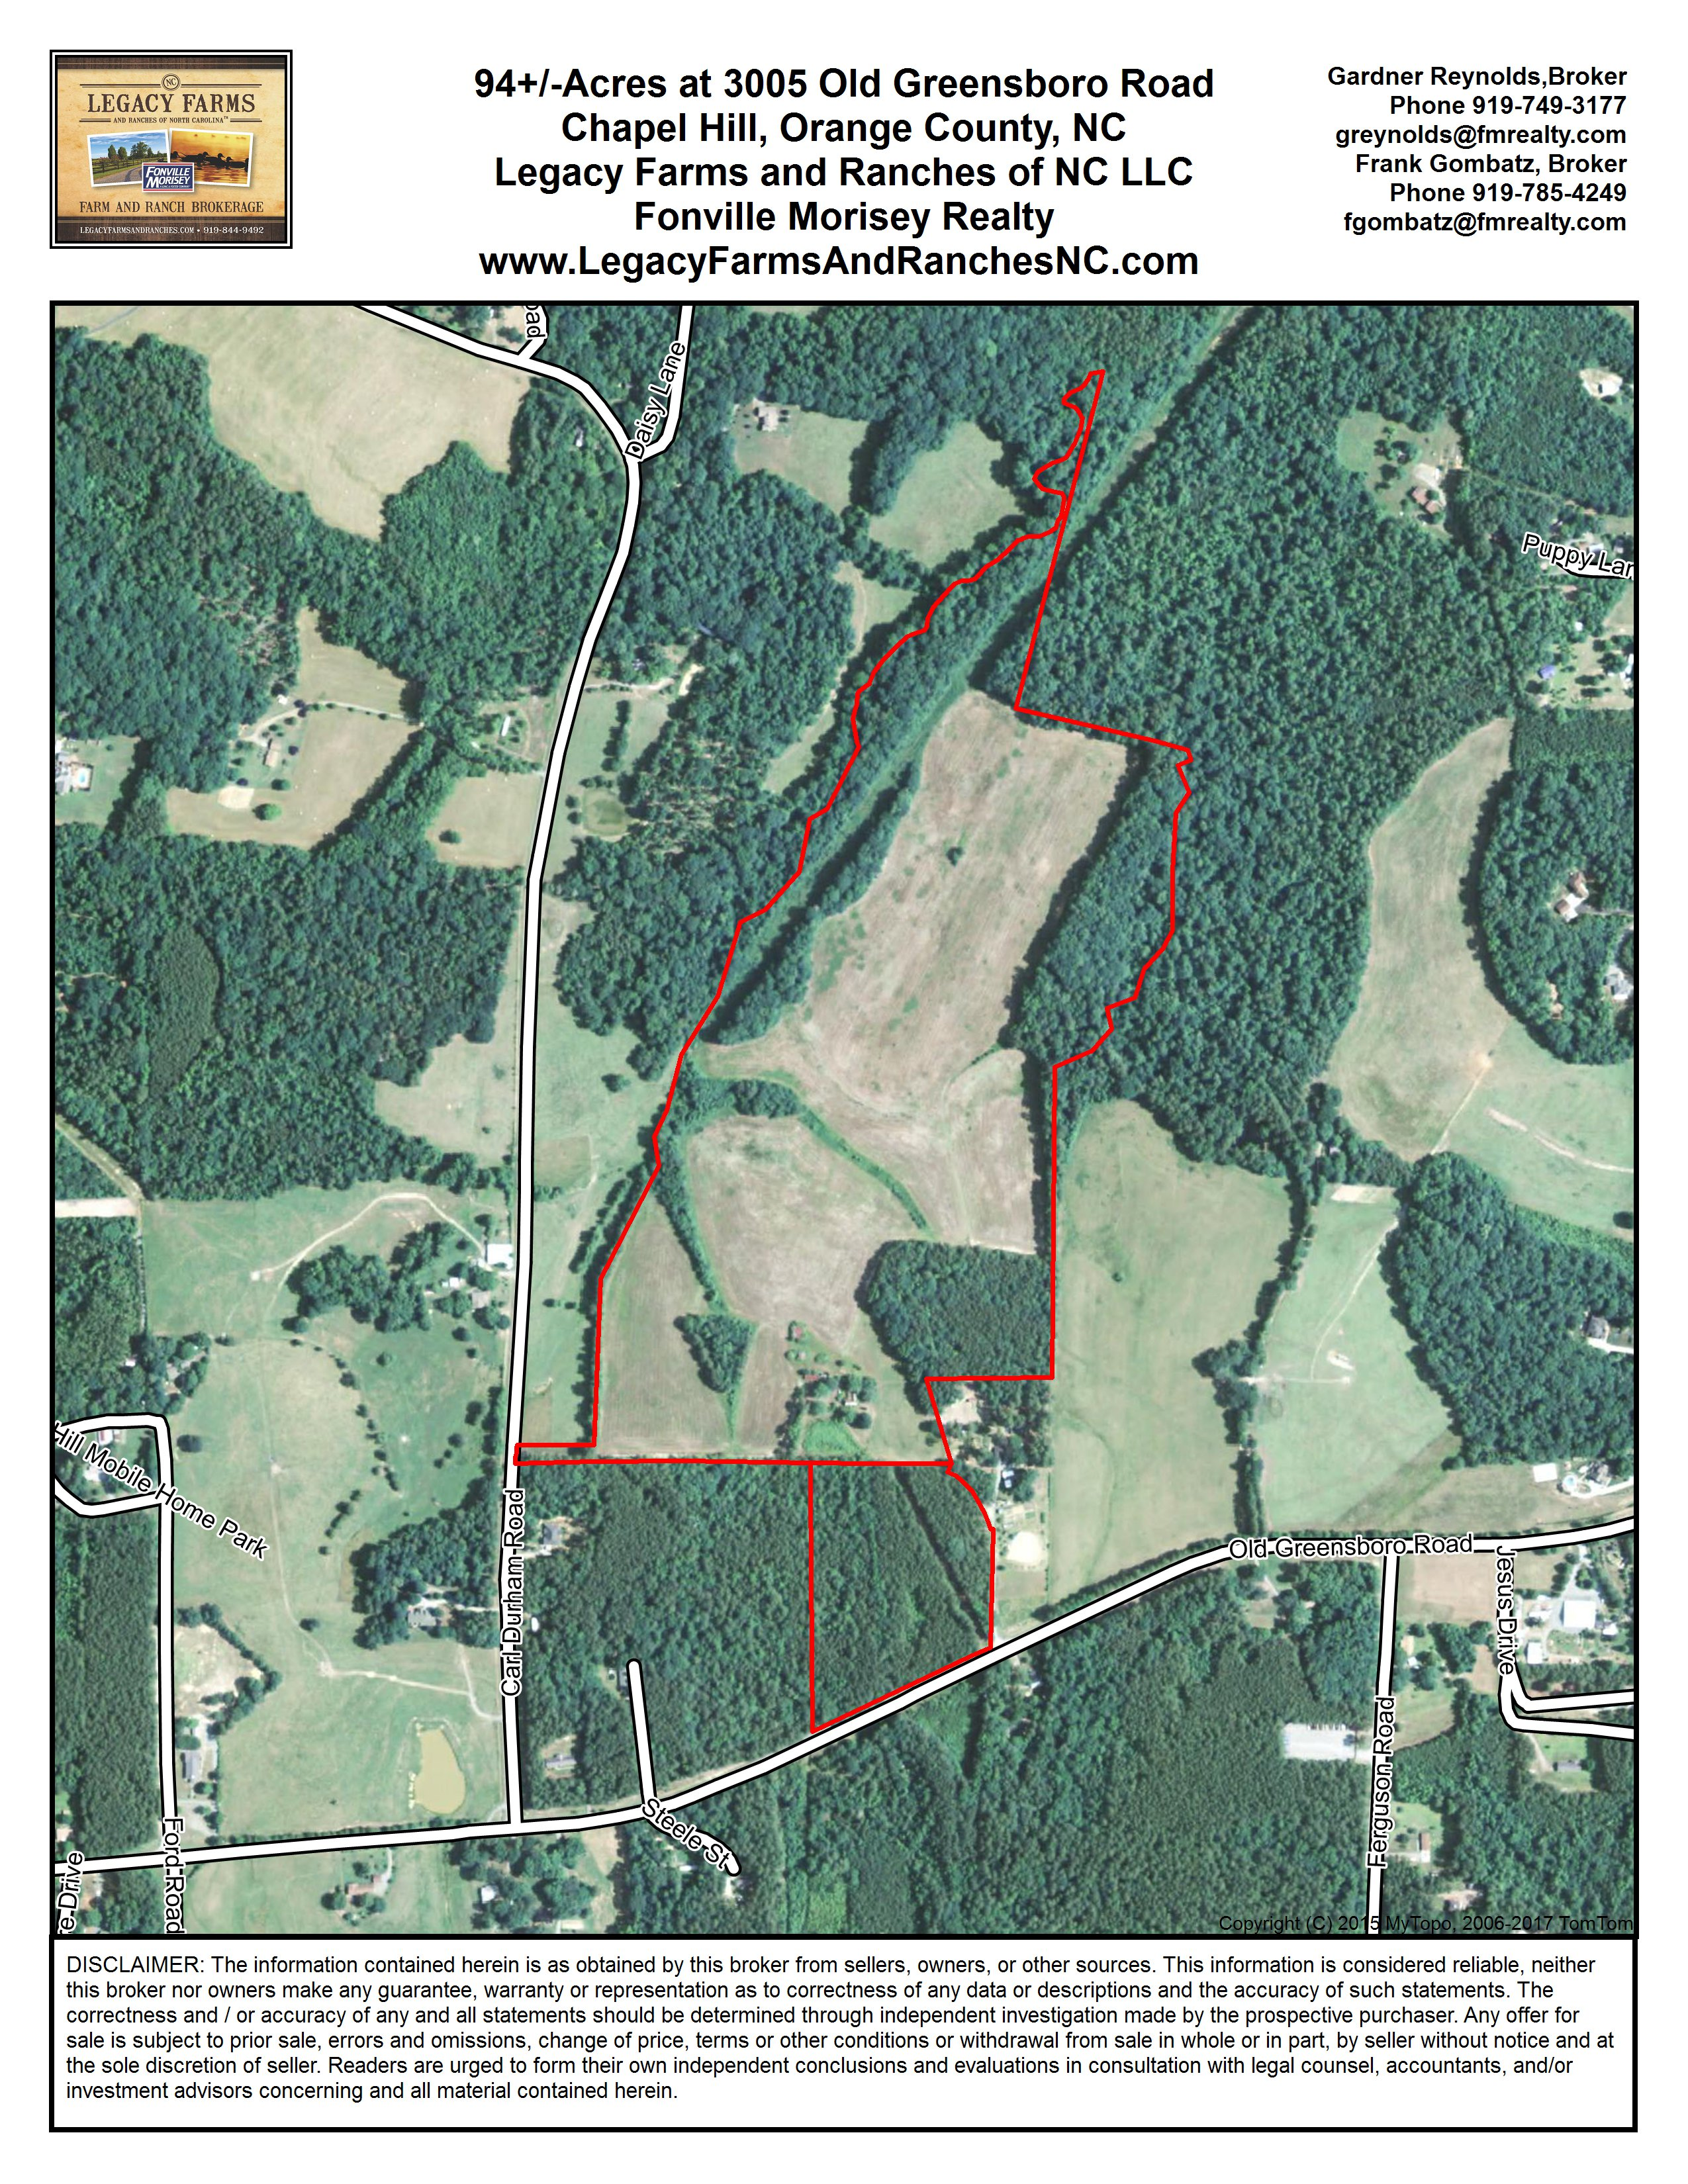 94 Acres Just Outside Chapel Hill In Orange County